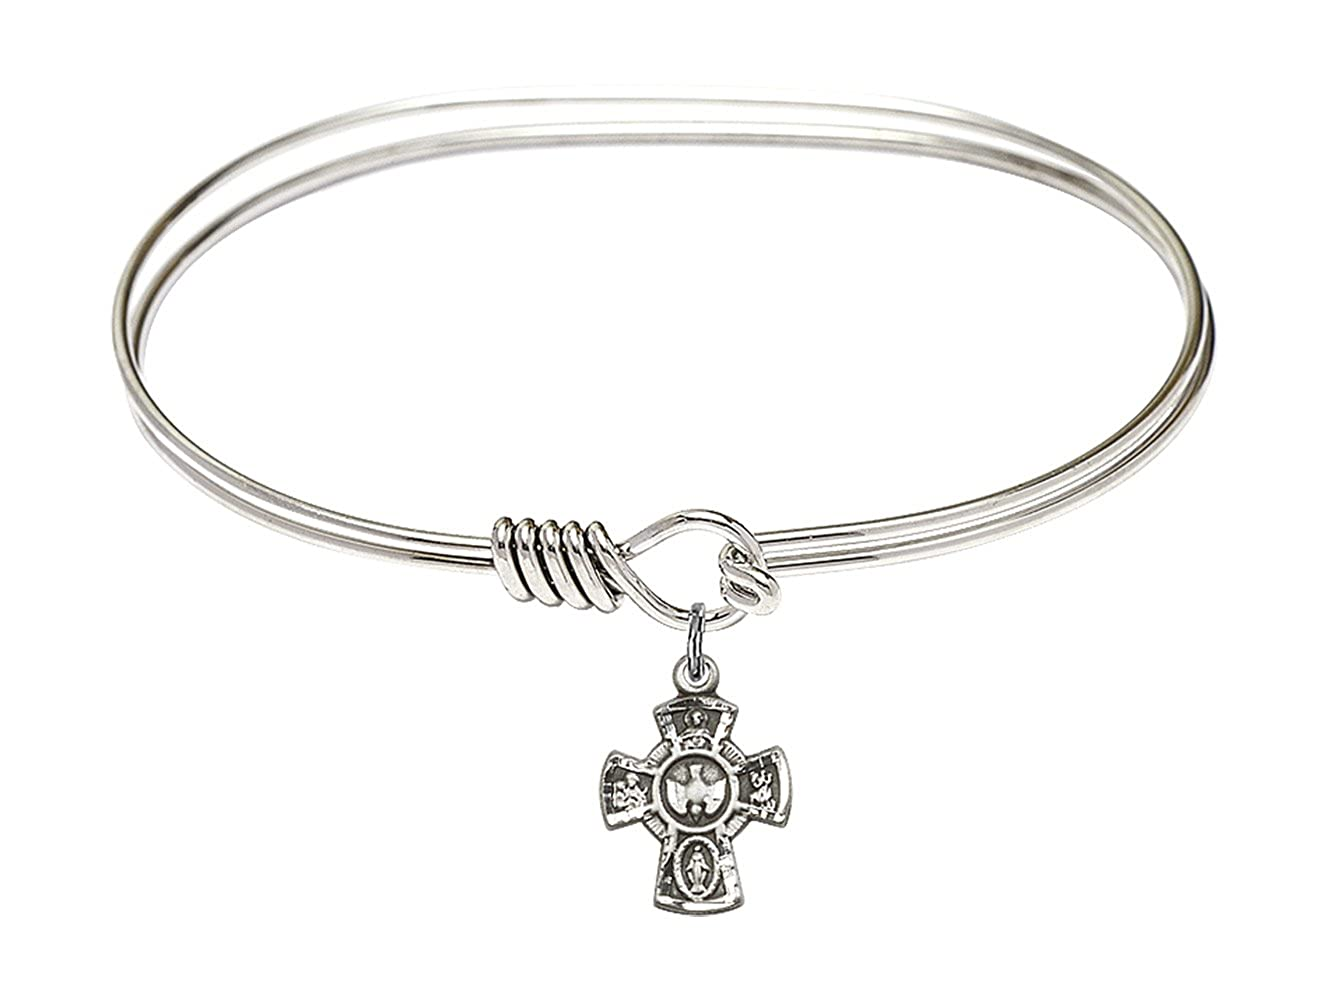 DiamondJewelryNY Eye Hook Bangle Bracelet with a 5-Way Charm.